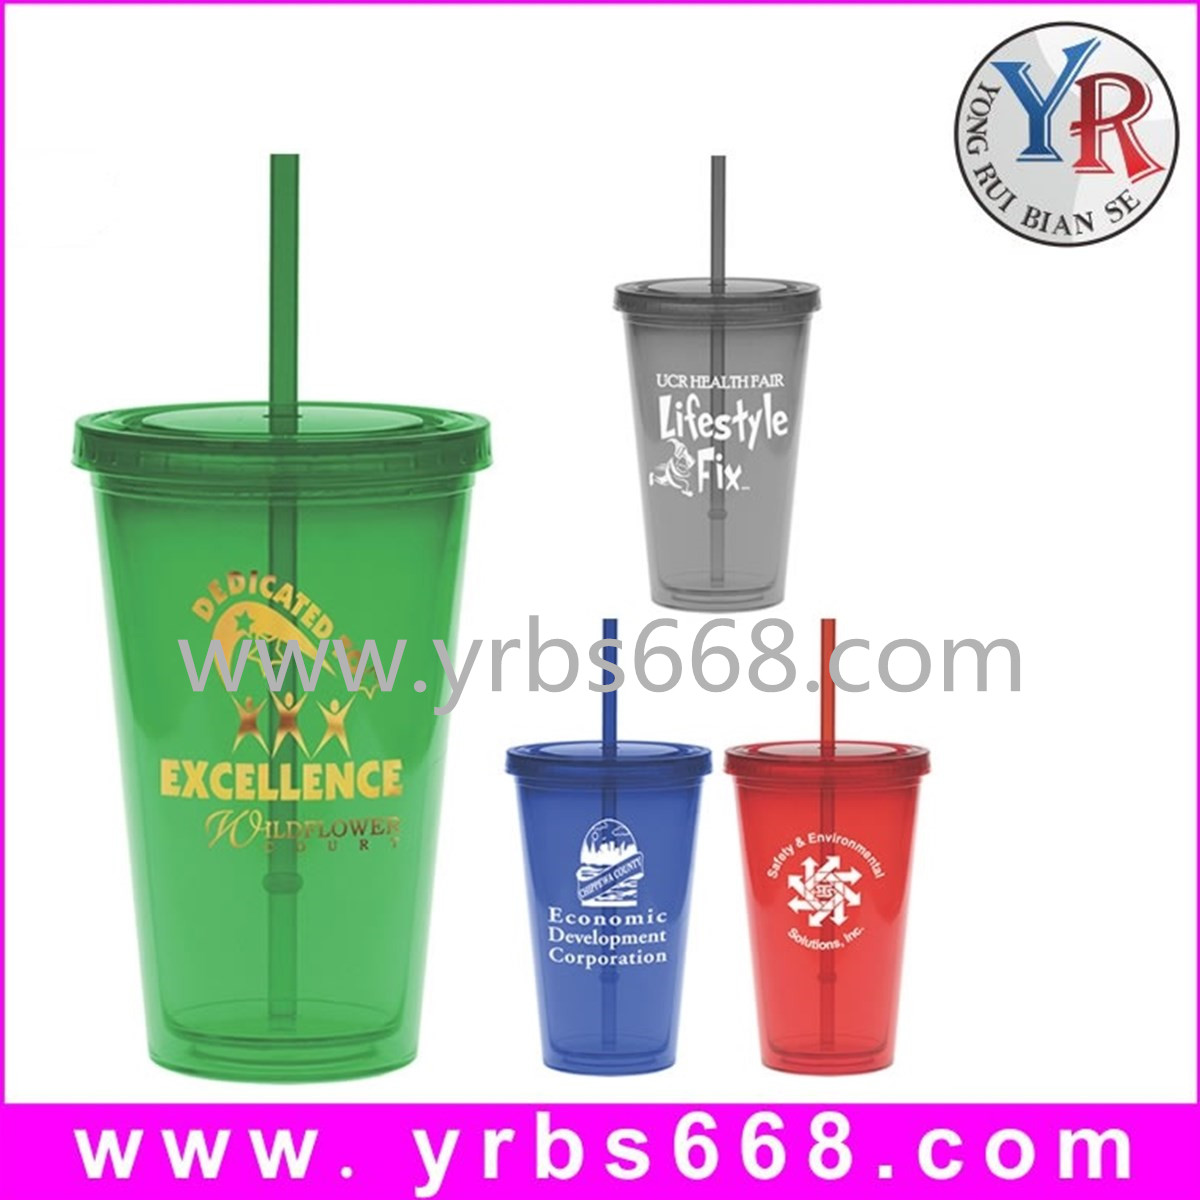 Manufacture custom plastic drink cup with straw,logo printing plastic drink cup with straw